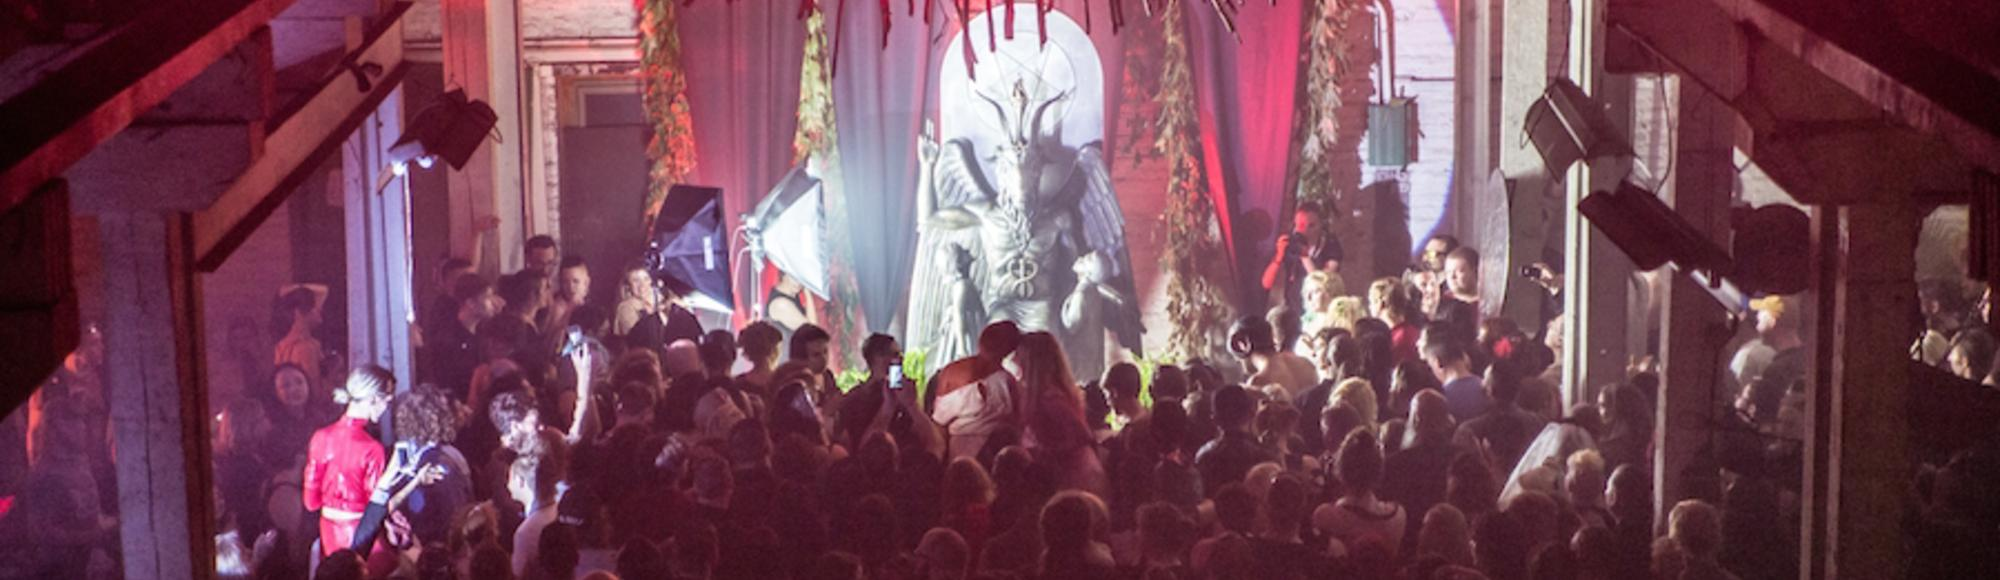 Inside the Secret Unveiling of the Baphomet Monument